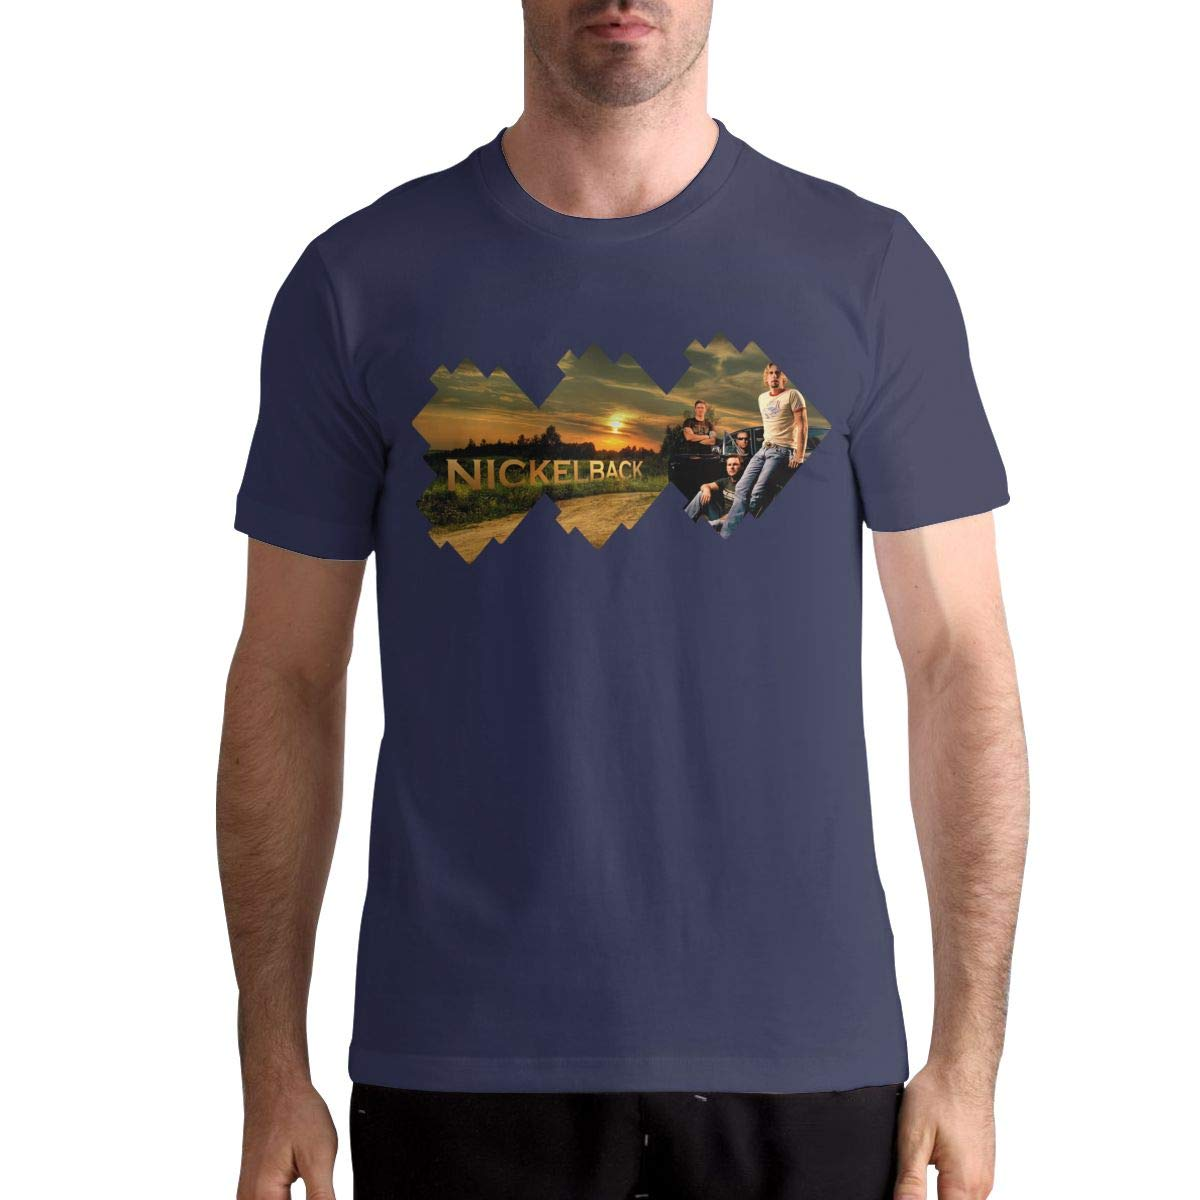 Thomassthoms S Nickelback Graphic Printing T Shirt For Summer T Shirt